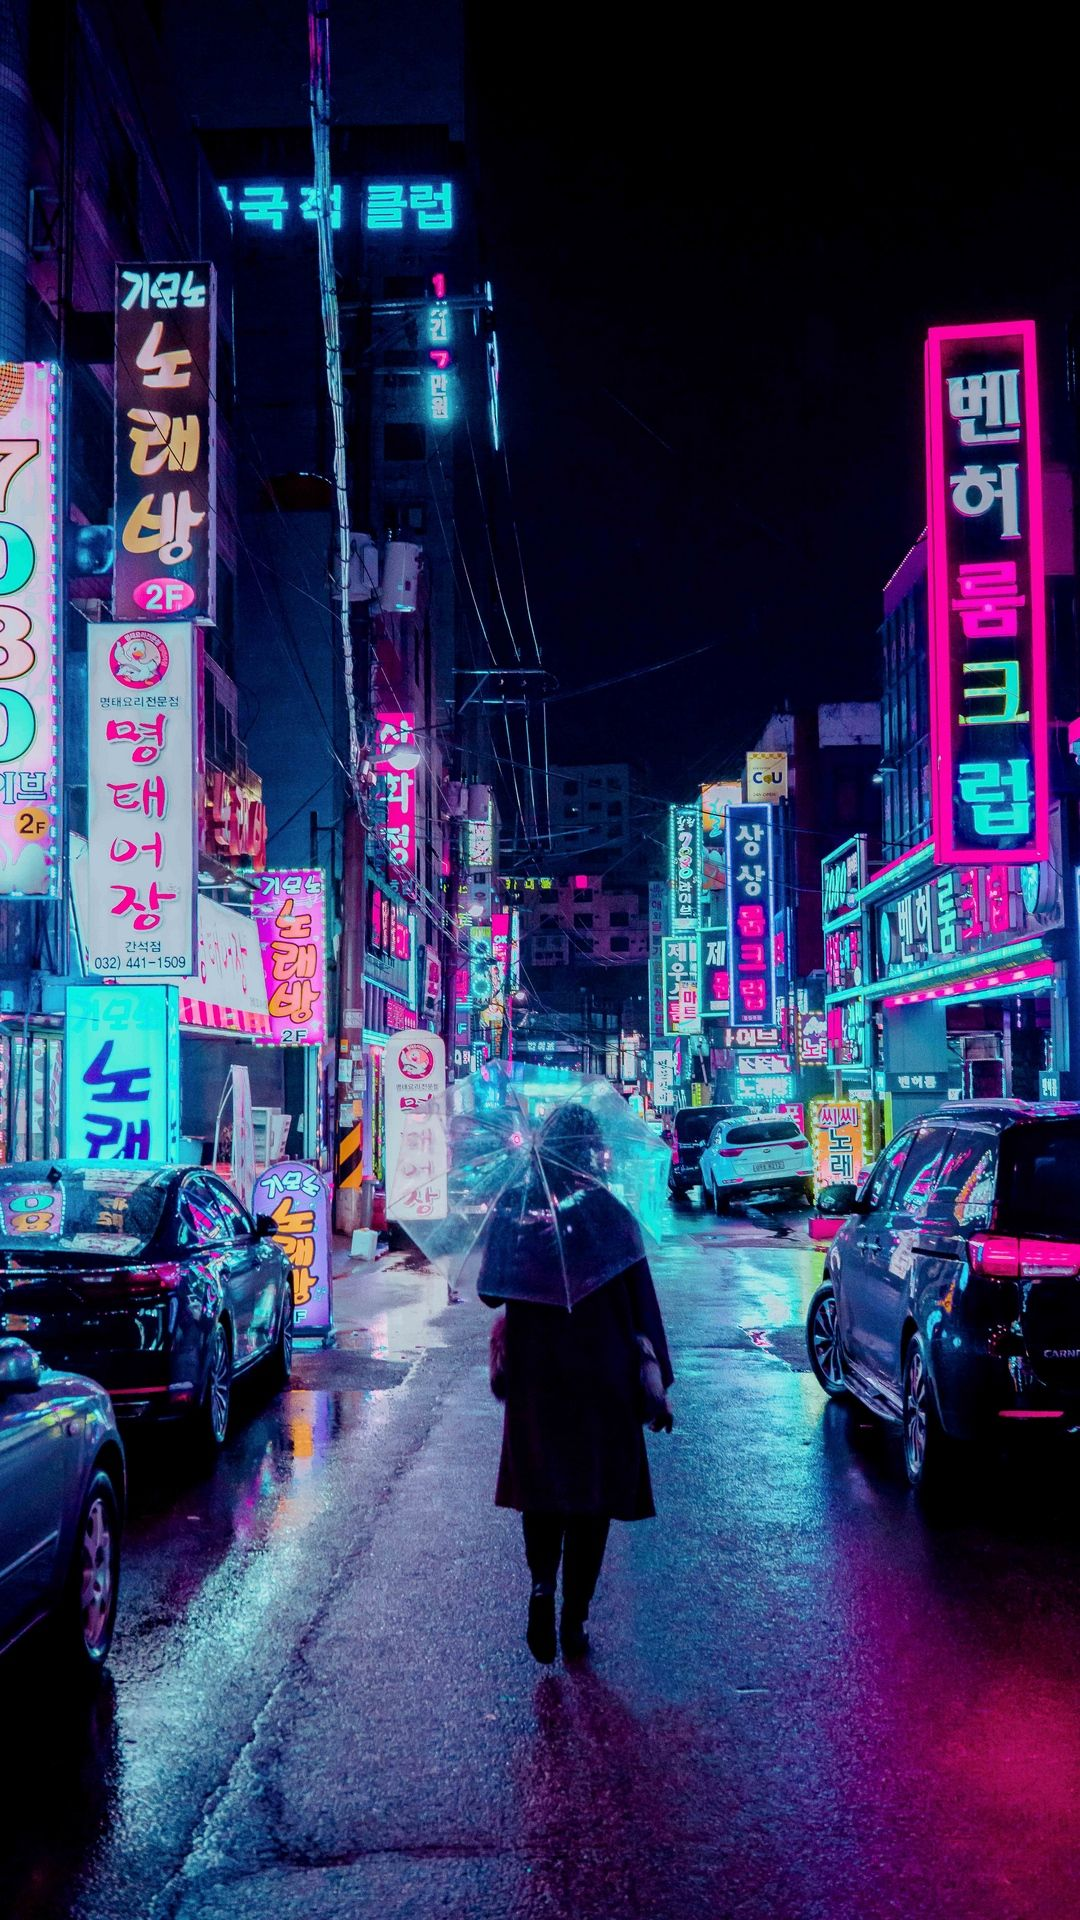 Muchatseble Cyberpunk Aesthetic Neon Wallpaper City Aesthetic